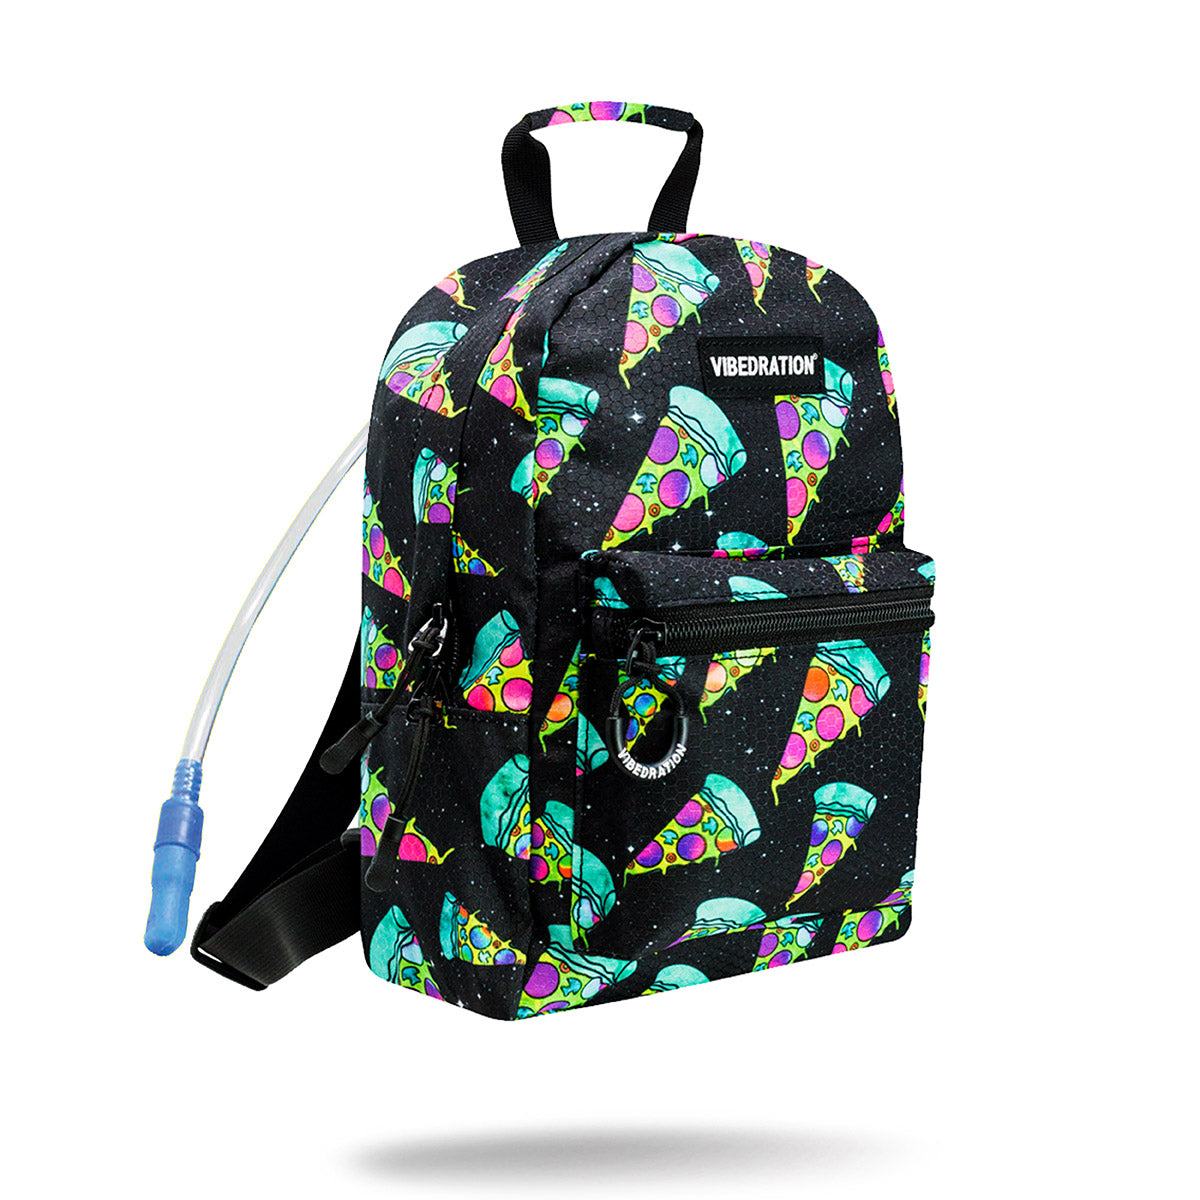 Black Trippy Melting Pizza Mini Backpack with 1 liter hydration bag